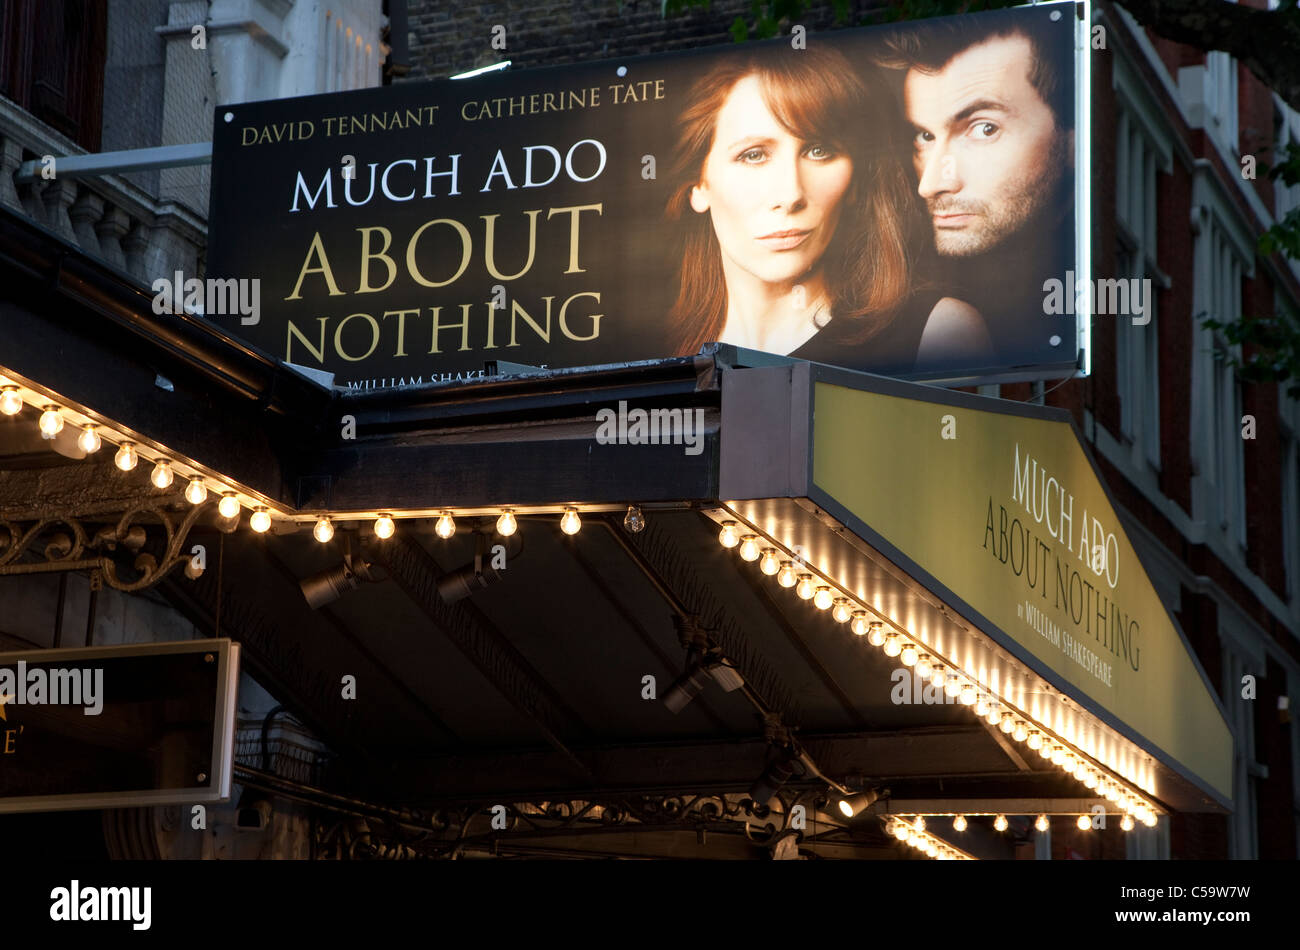 Much Ado About Nothing with Catherine Tate and David Tennant at Wyndham's Theatre, London - Stock Image